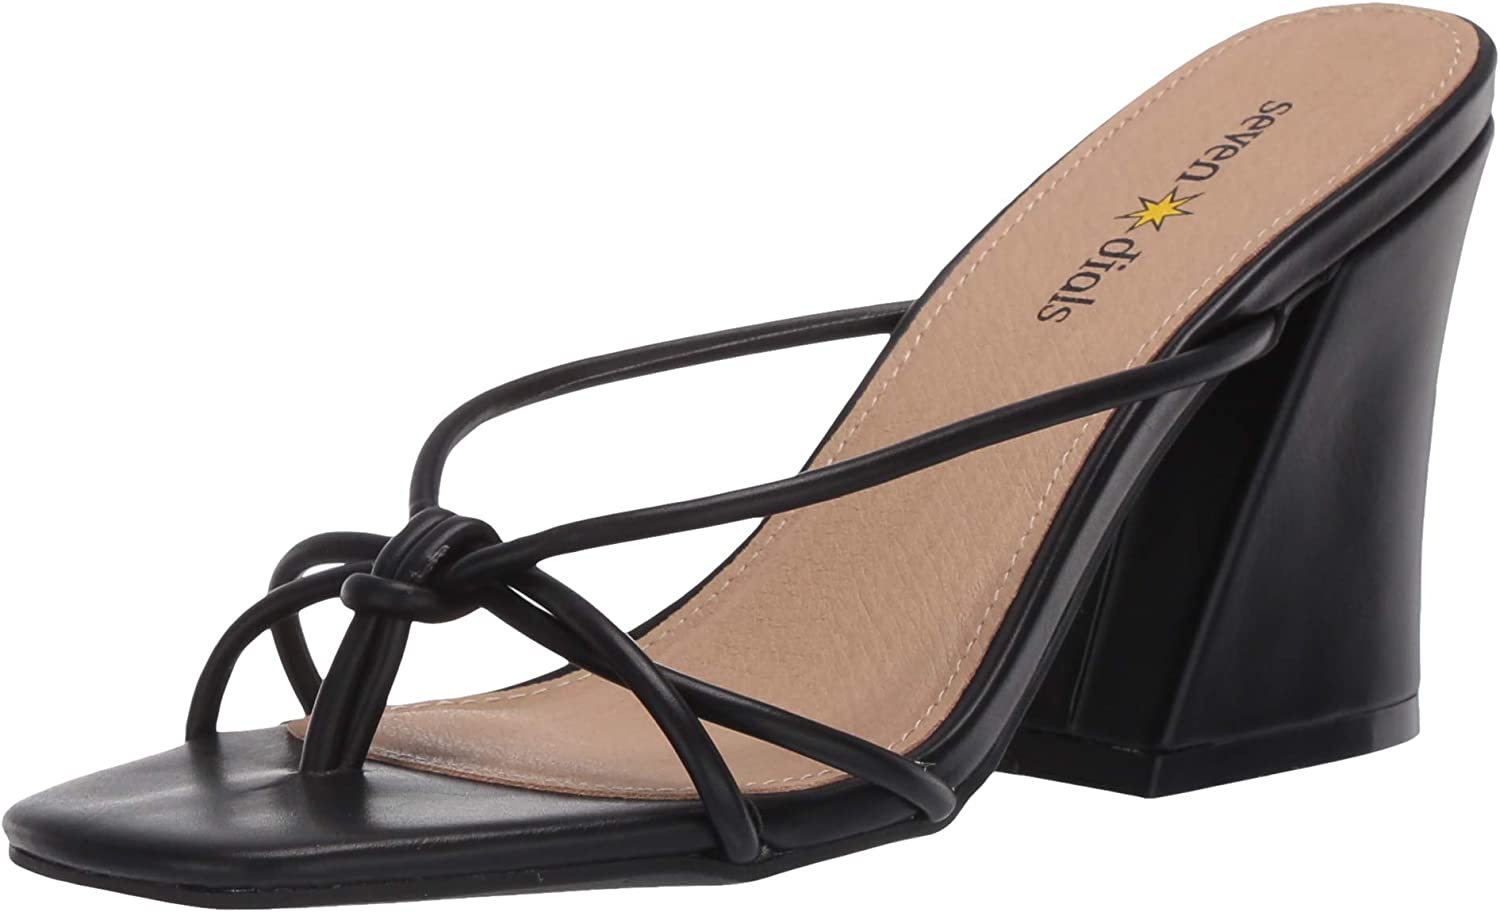 Over item handling ☆ Super beauty product restock quality top SEVEN DIALS Women's Heeled Chester Sandal